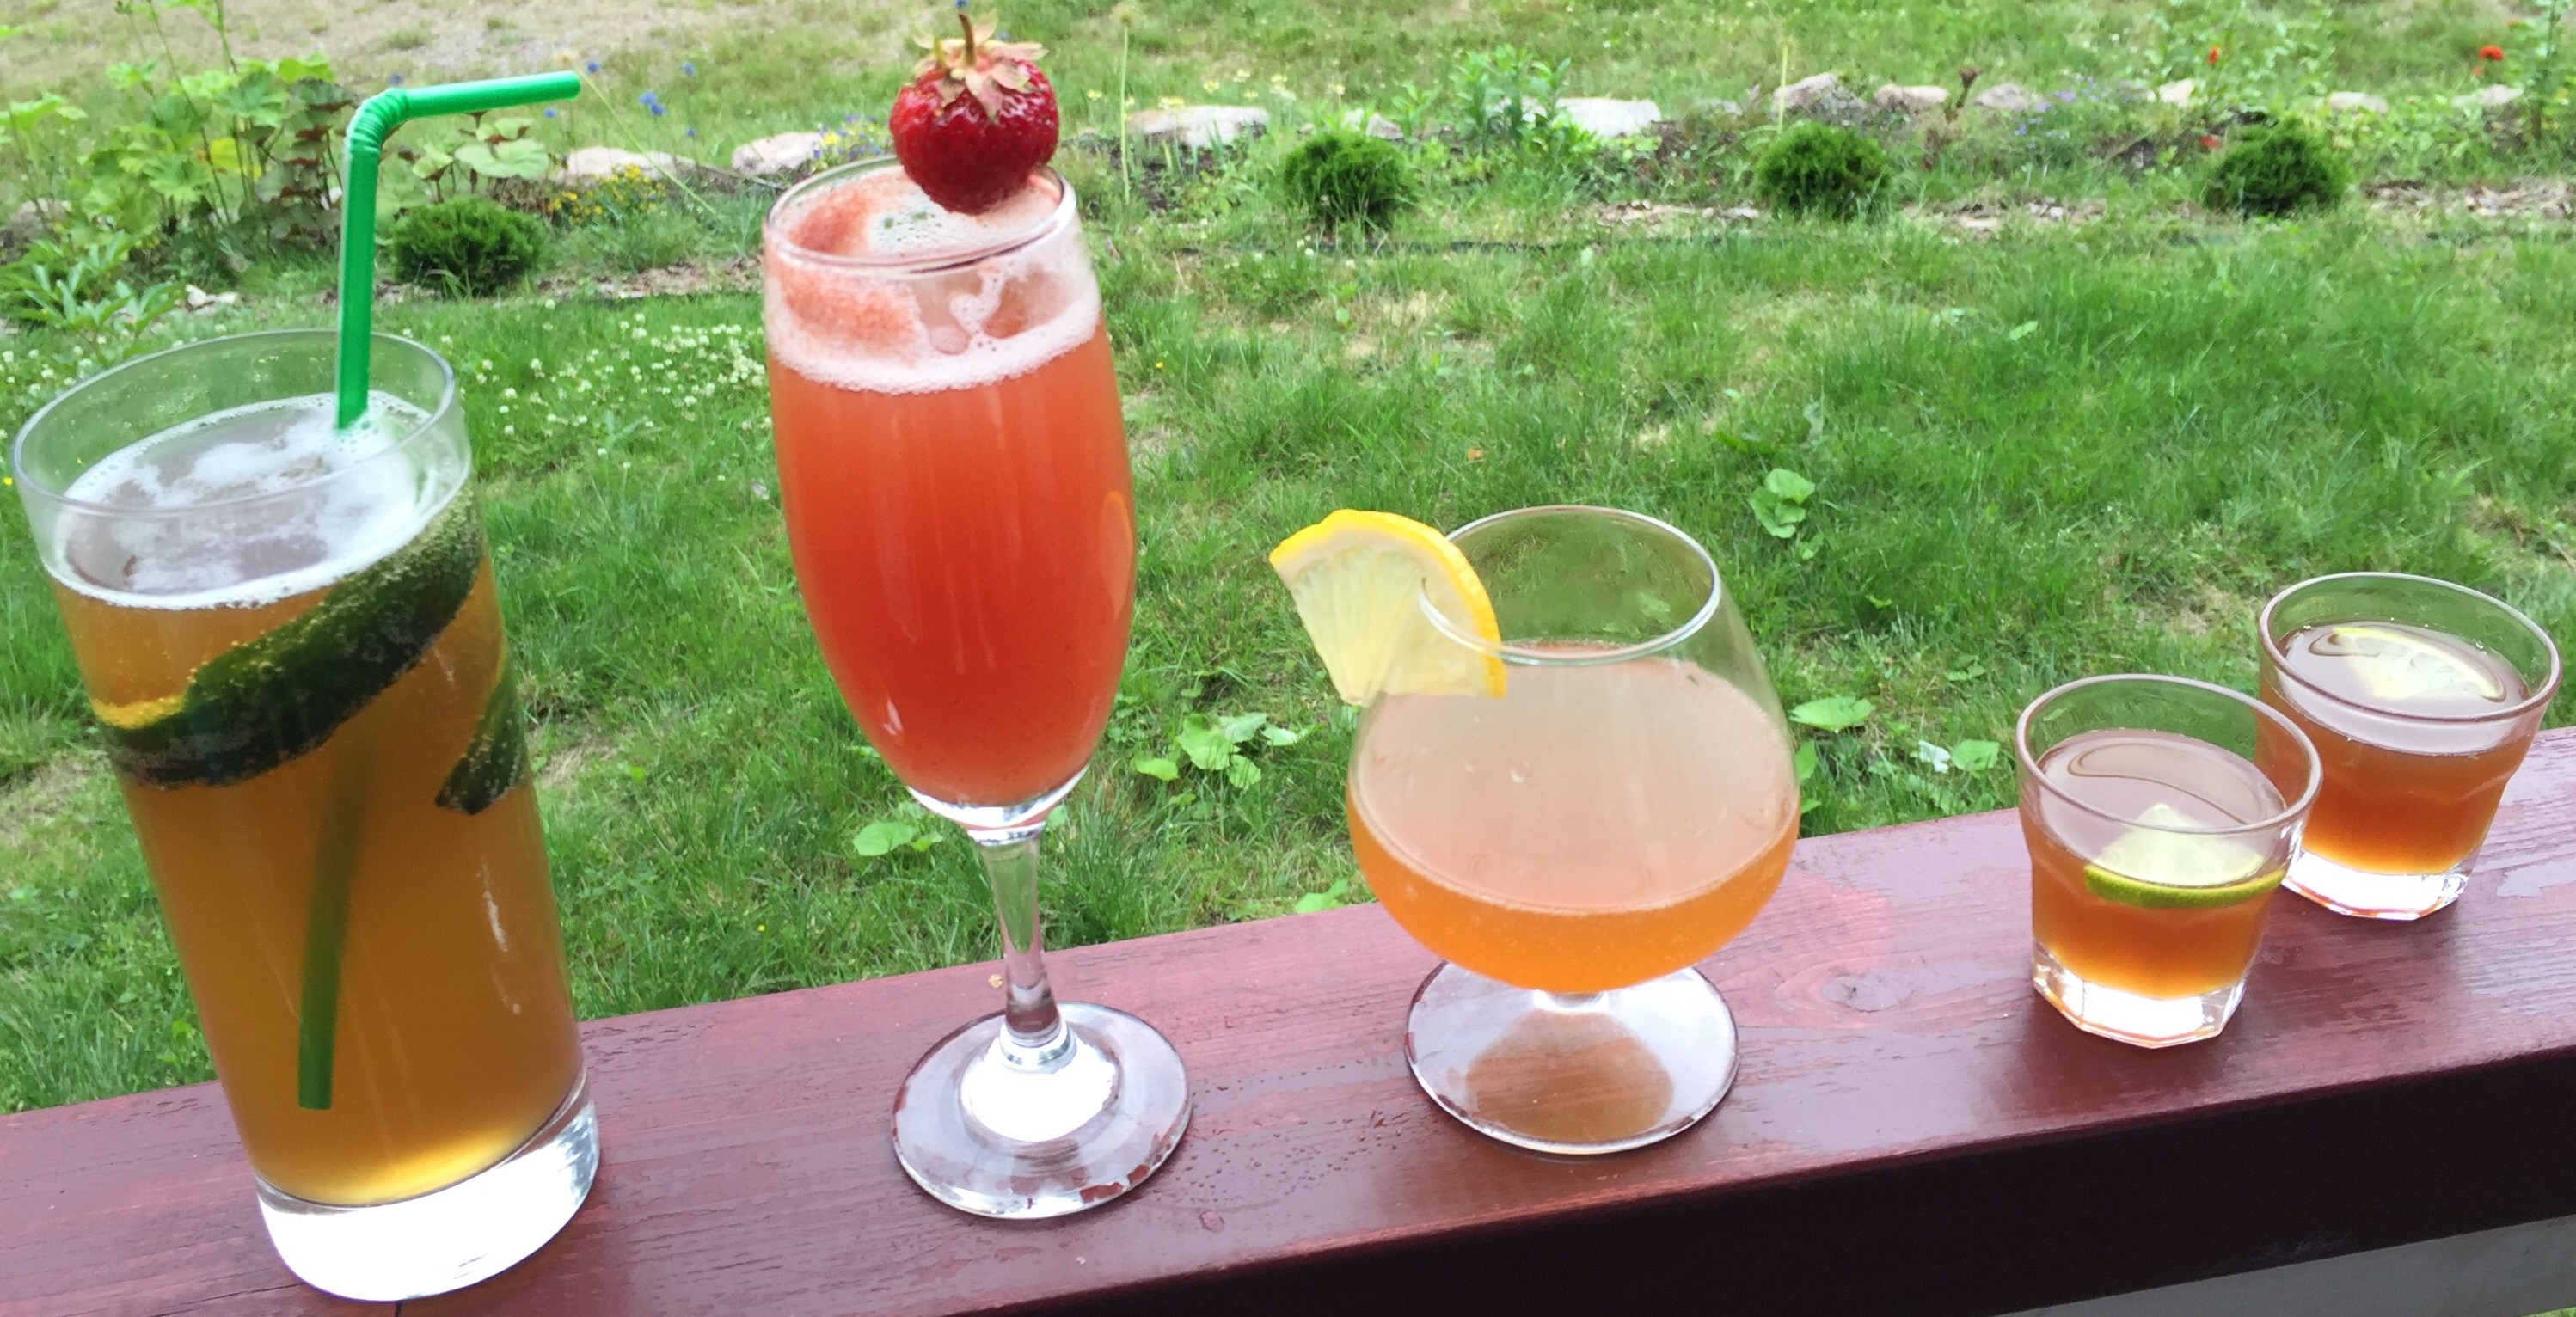 Sahticocktail á la Brewniverse: Saimaa Royale, Strawberry Sampo, Sunny Sahti, Shotiverse